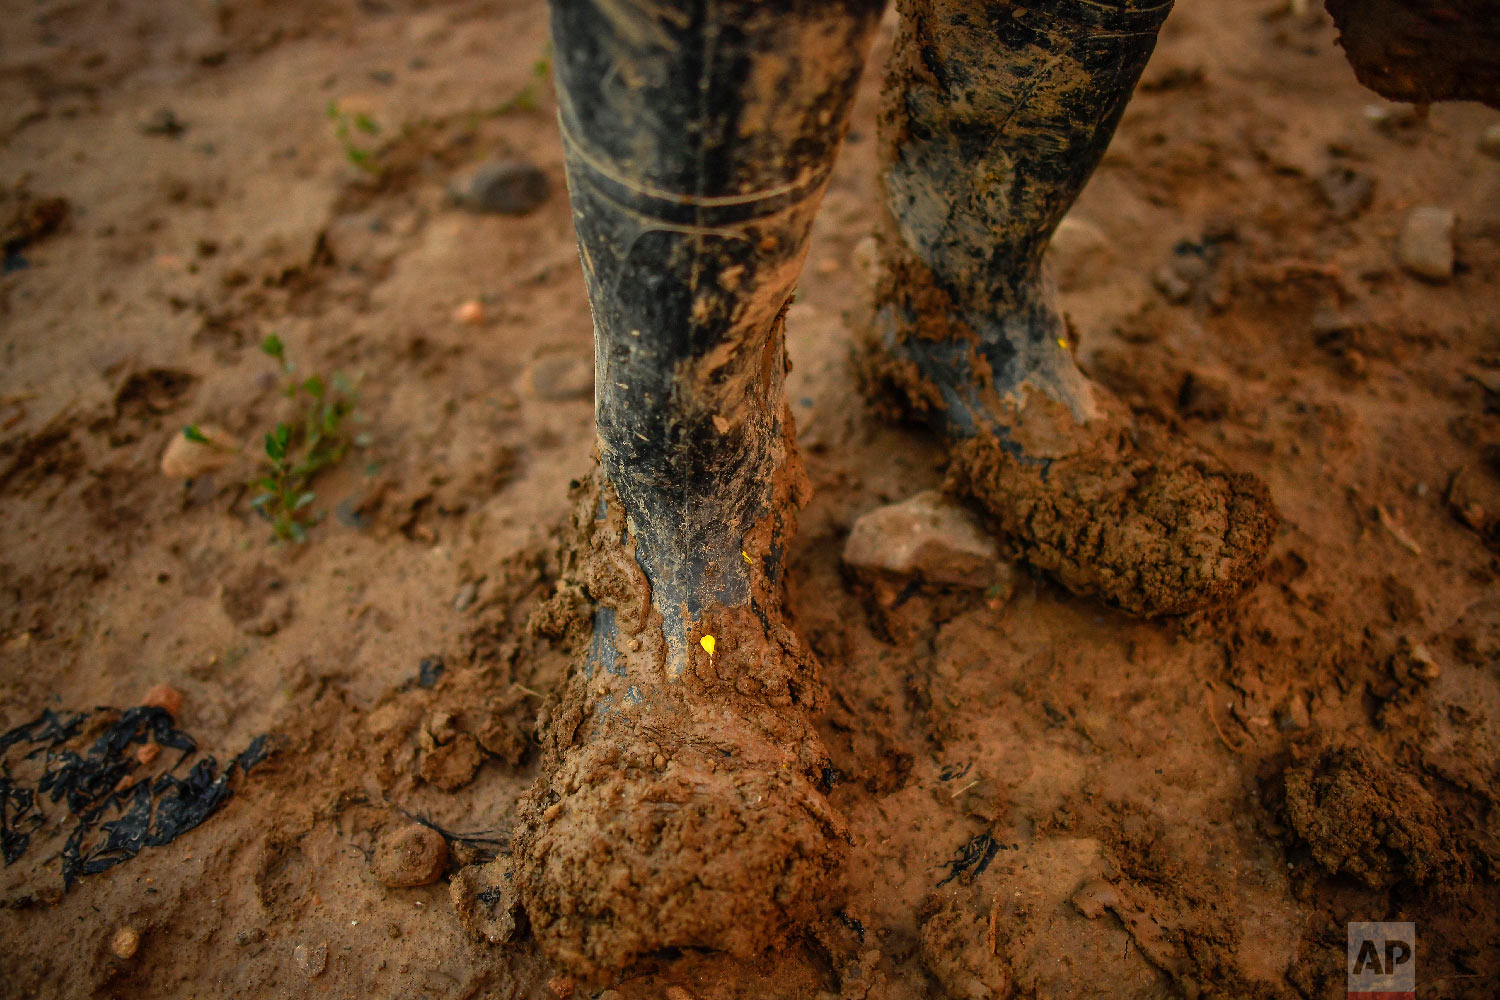 Temporary worker Evin, 25, from Cameroon, pauses on his job in his muddy boots, as he collects white asparagus from a field in Caparroso, around 85 km (52 miles) from Pamplona, northern Spain on Thursday, May 31, 2018 photo. (AP Photo/Alvaro Barrientos)